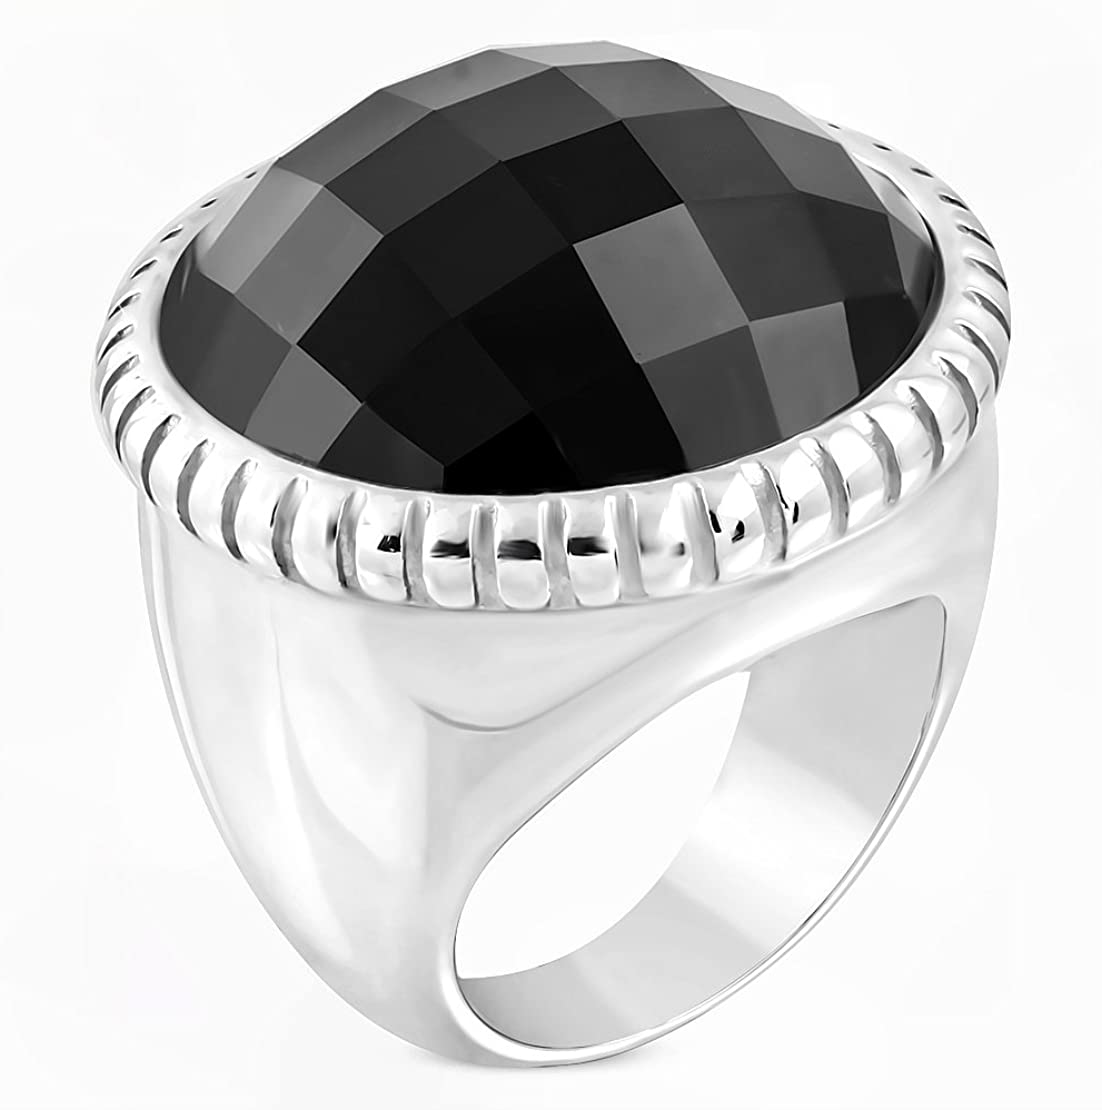 Stainless Steel Milgrain Edge Bezel-set Checkerboard-Cut Round Cocktail Ring with Faceted Jet Black CZ